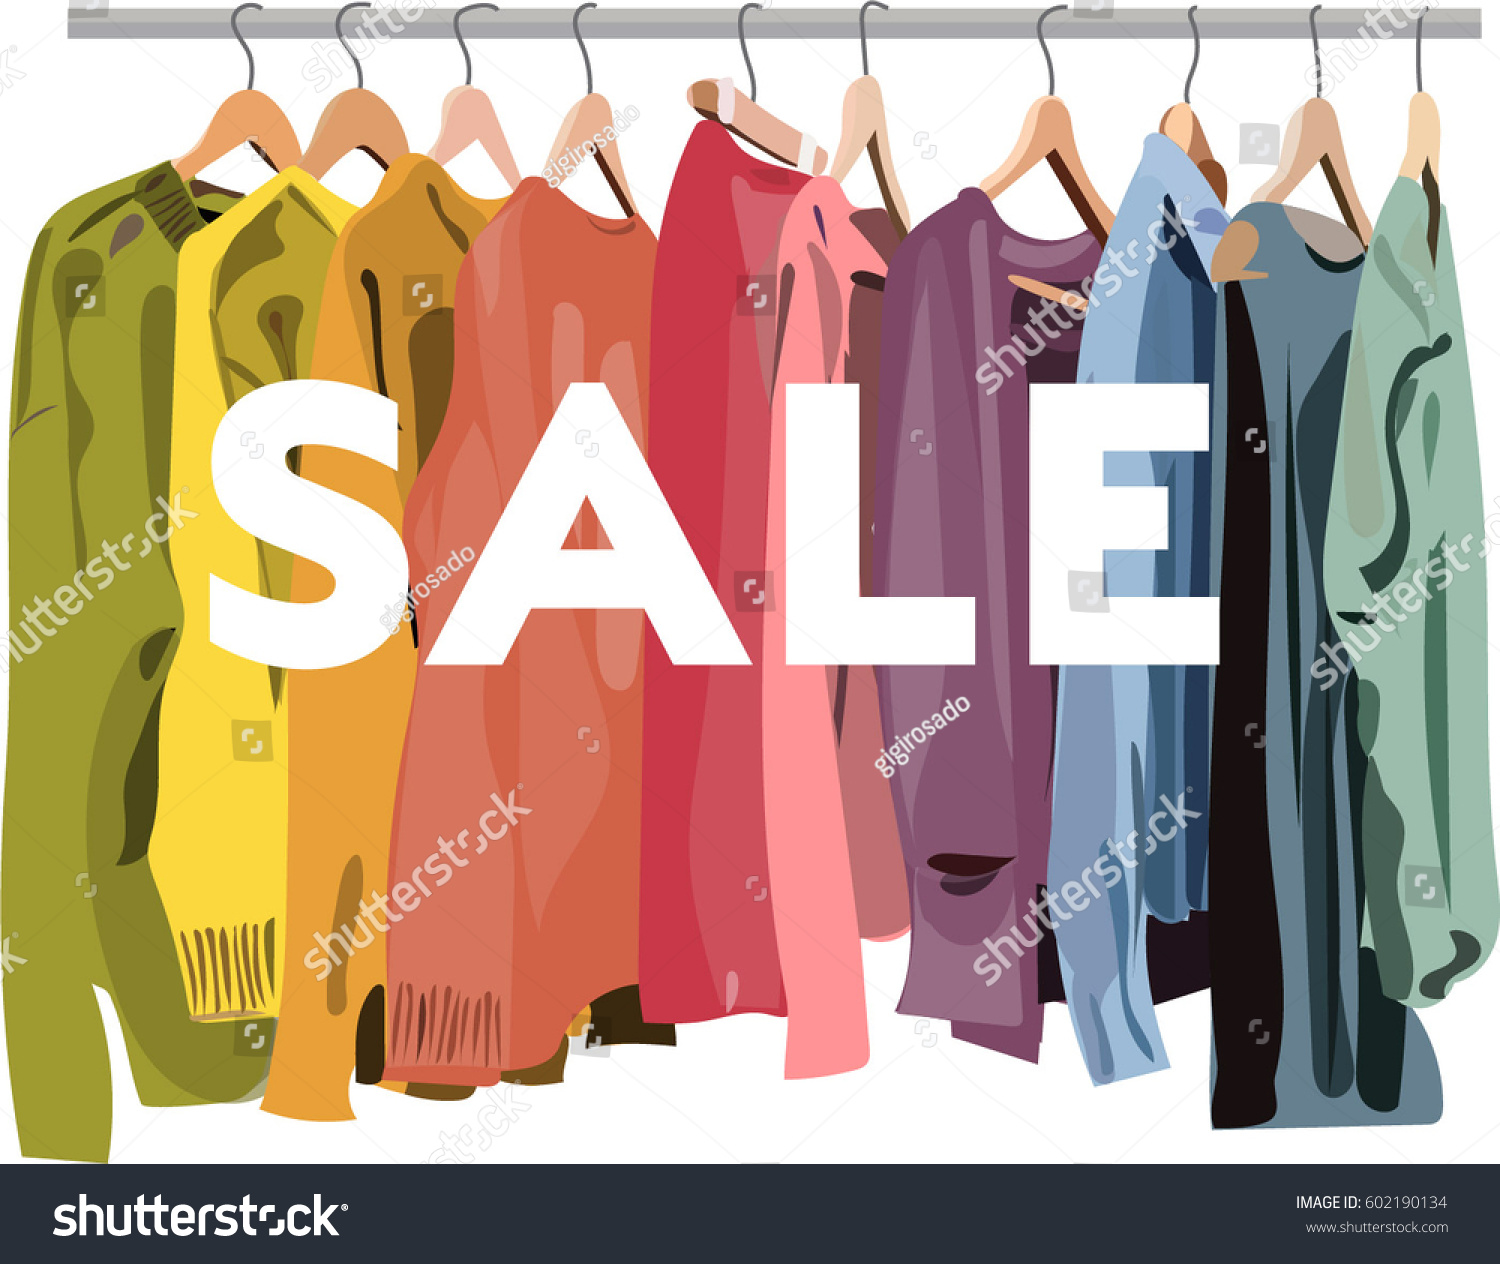 fashion retail shop sale discount signfor website leaflets flat design with text clothes